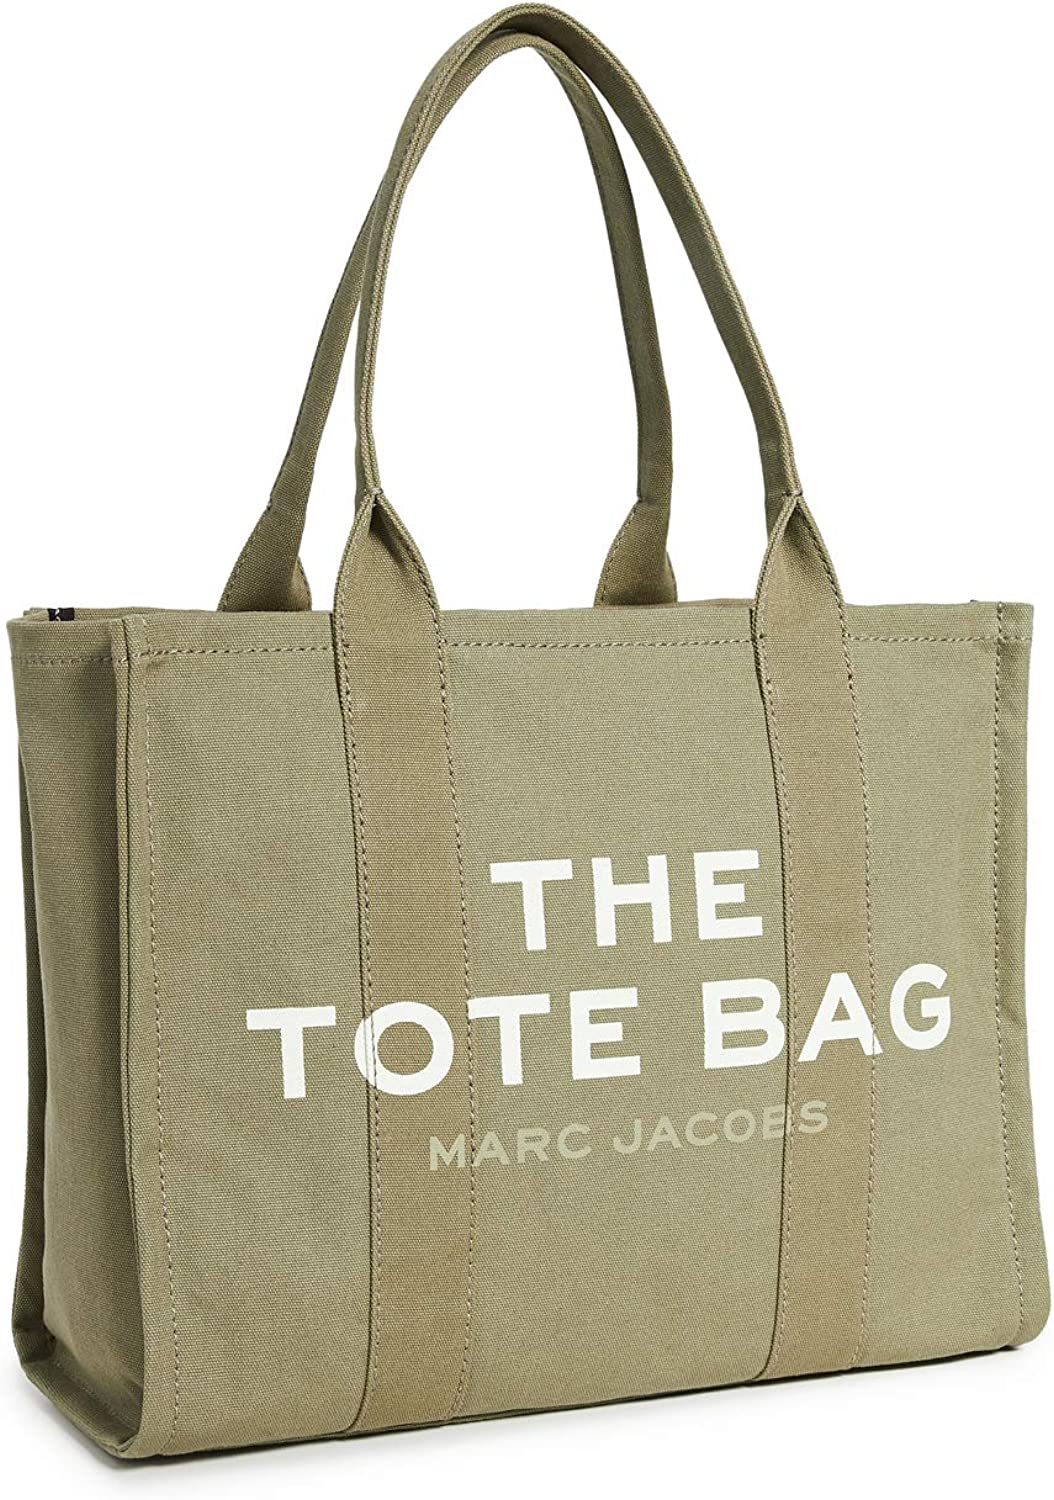 The Marc Jacobs Women's Traveler Tote